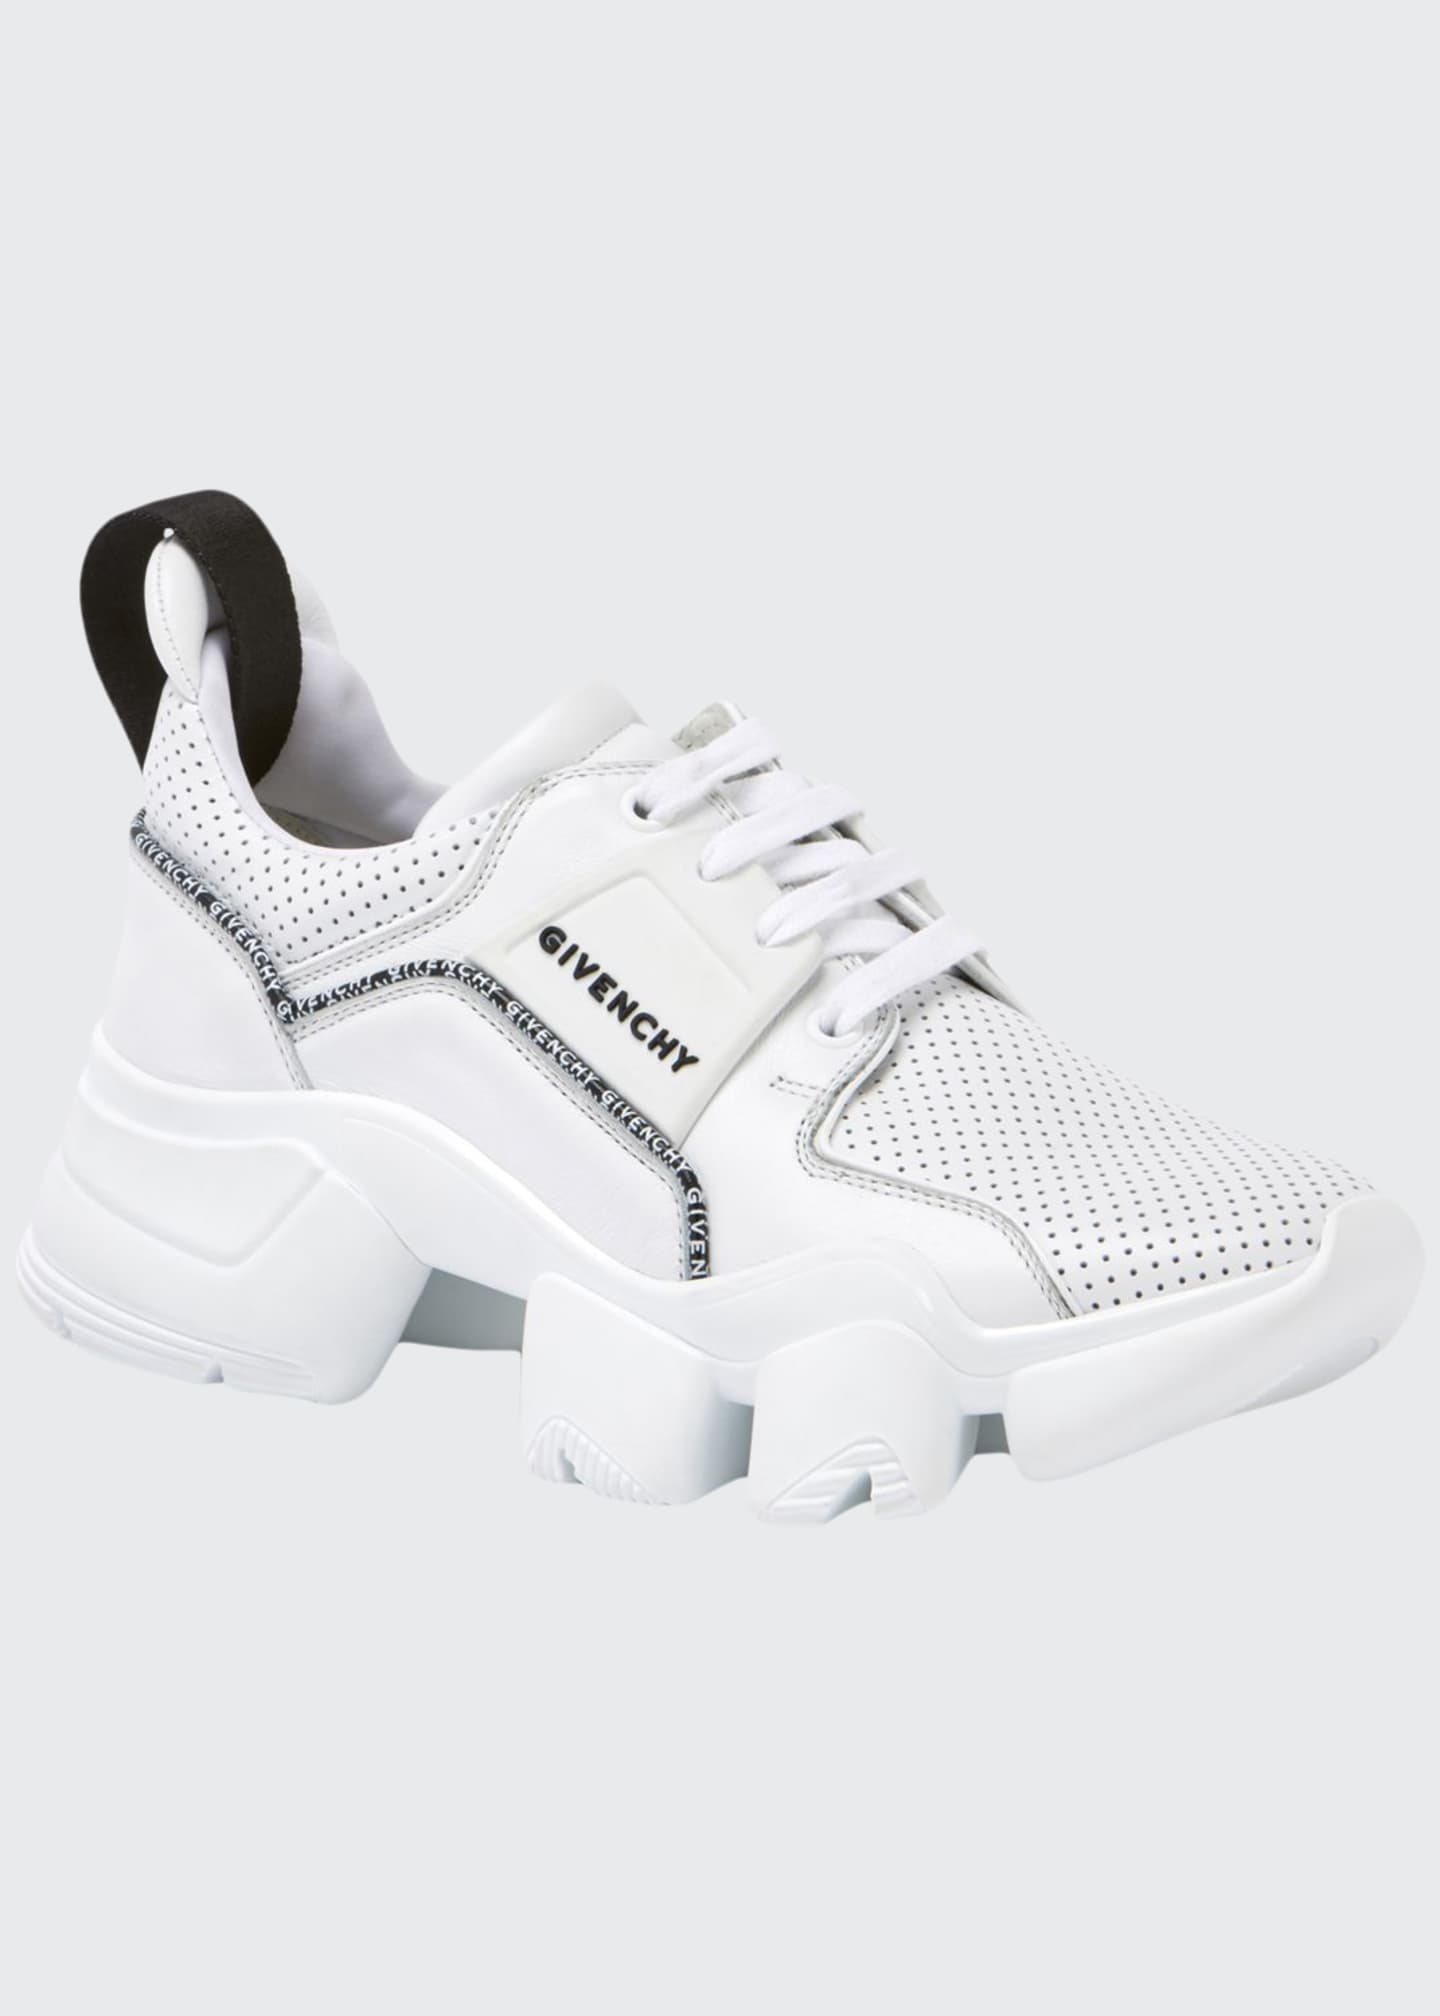 Givenchy Jaw Low-Top Perforated Leather Sneakers